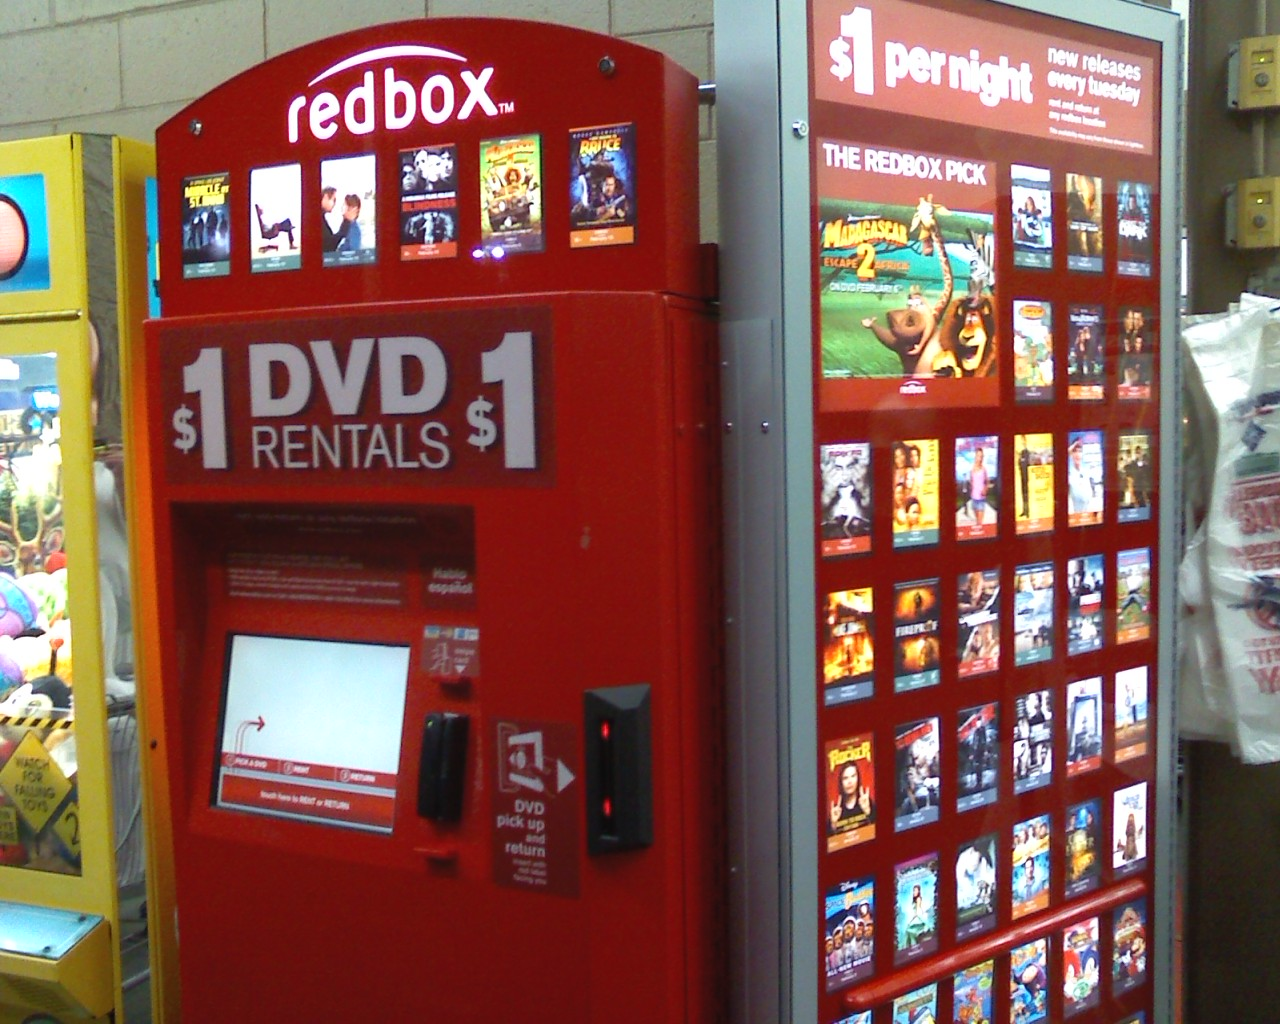 New Redbox releases out now and coming soon including movie info, ratings and trailers. Get the latest Redbox release dates for the latest movies.